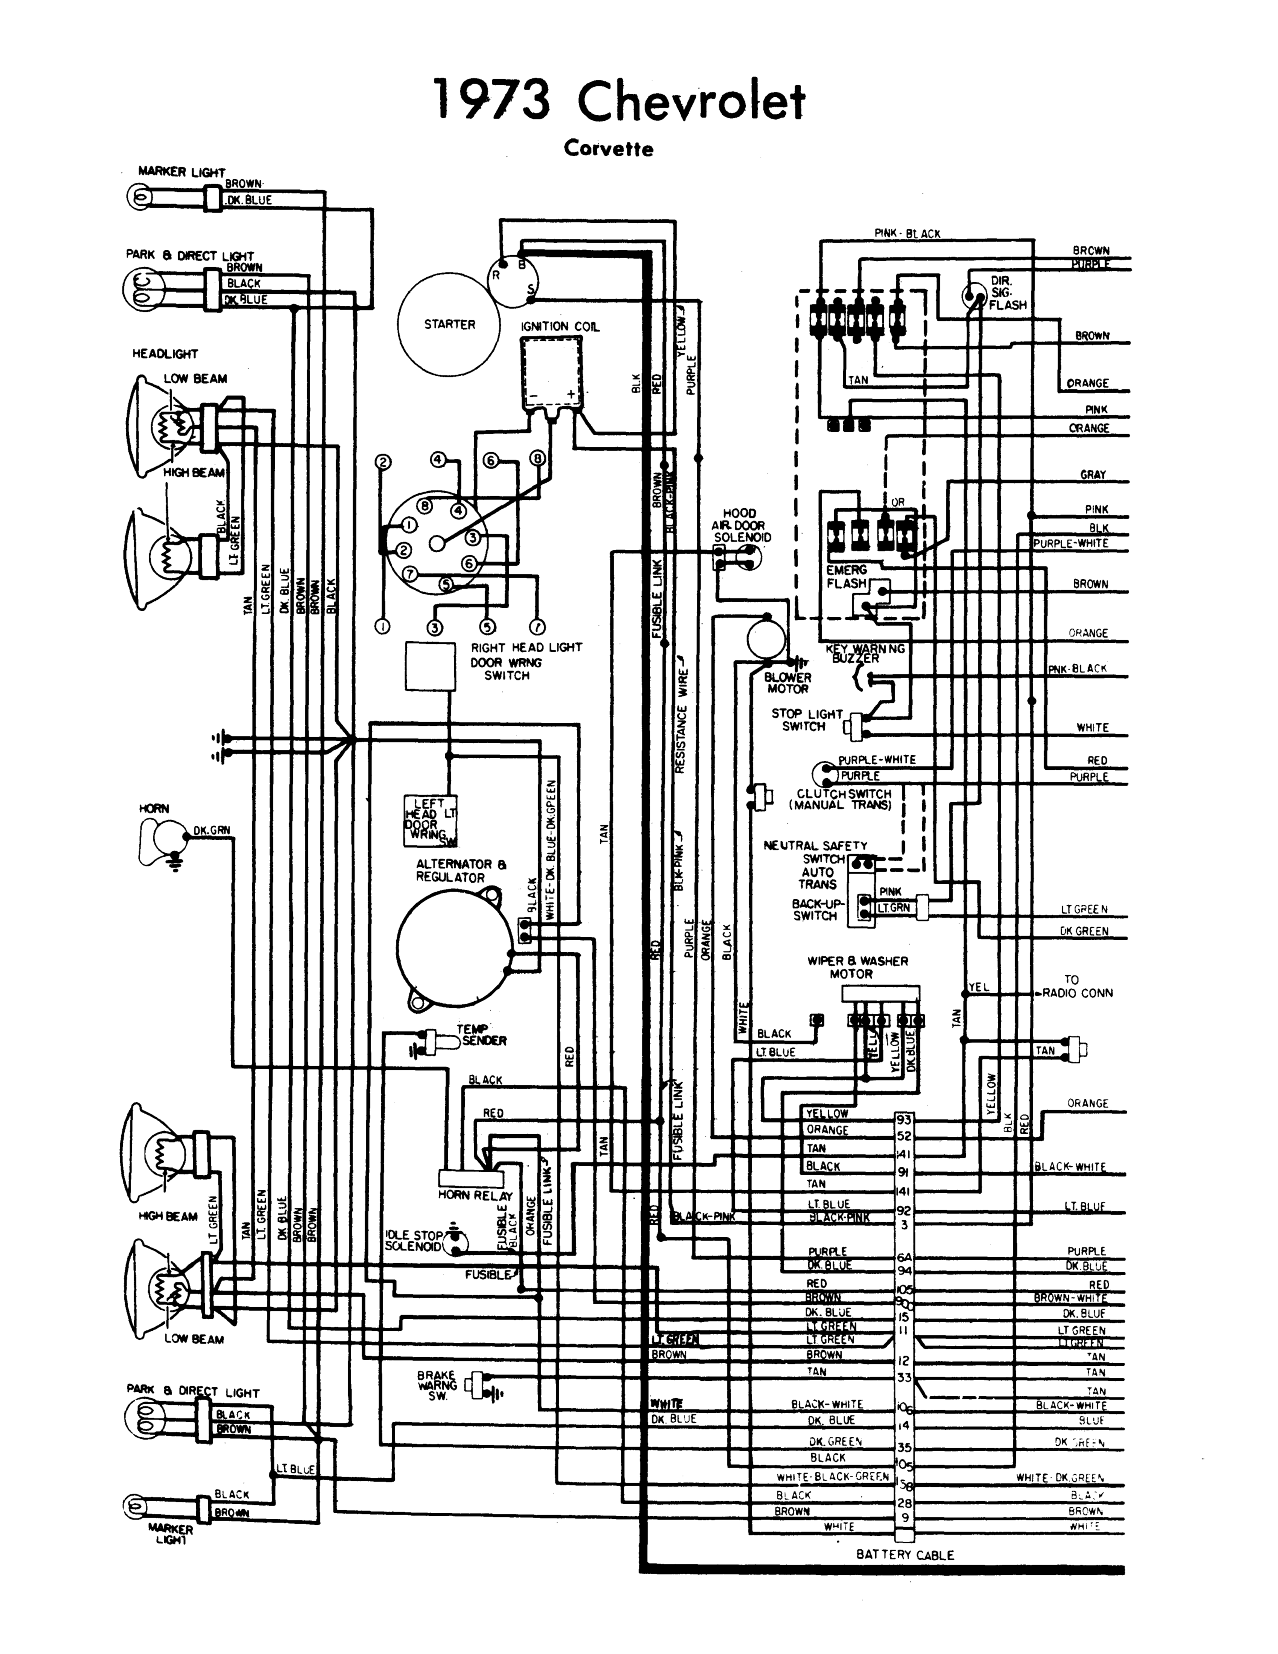 Wiring Diagram 1973 Corvette Chevy Diagrams 1967 Chevelle Ss Schematic